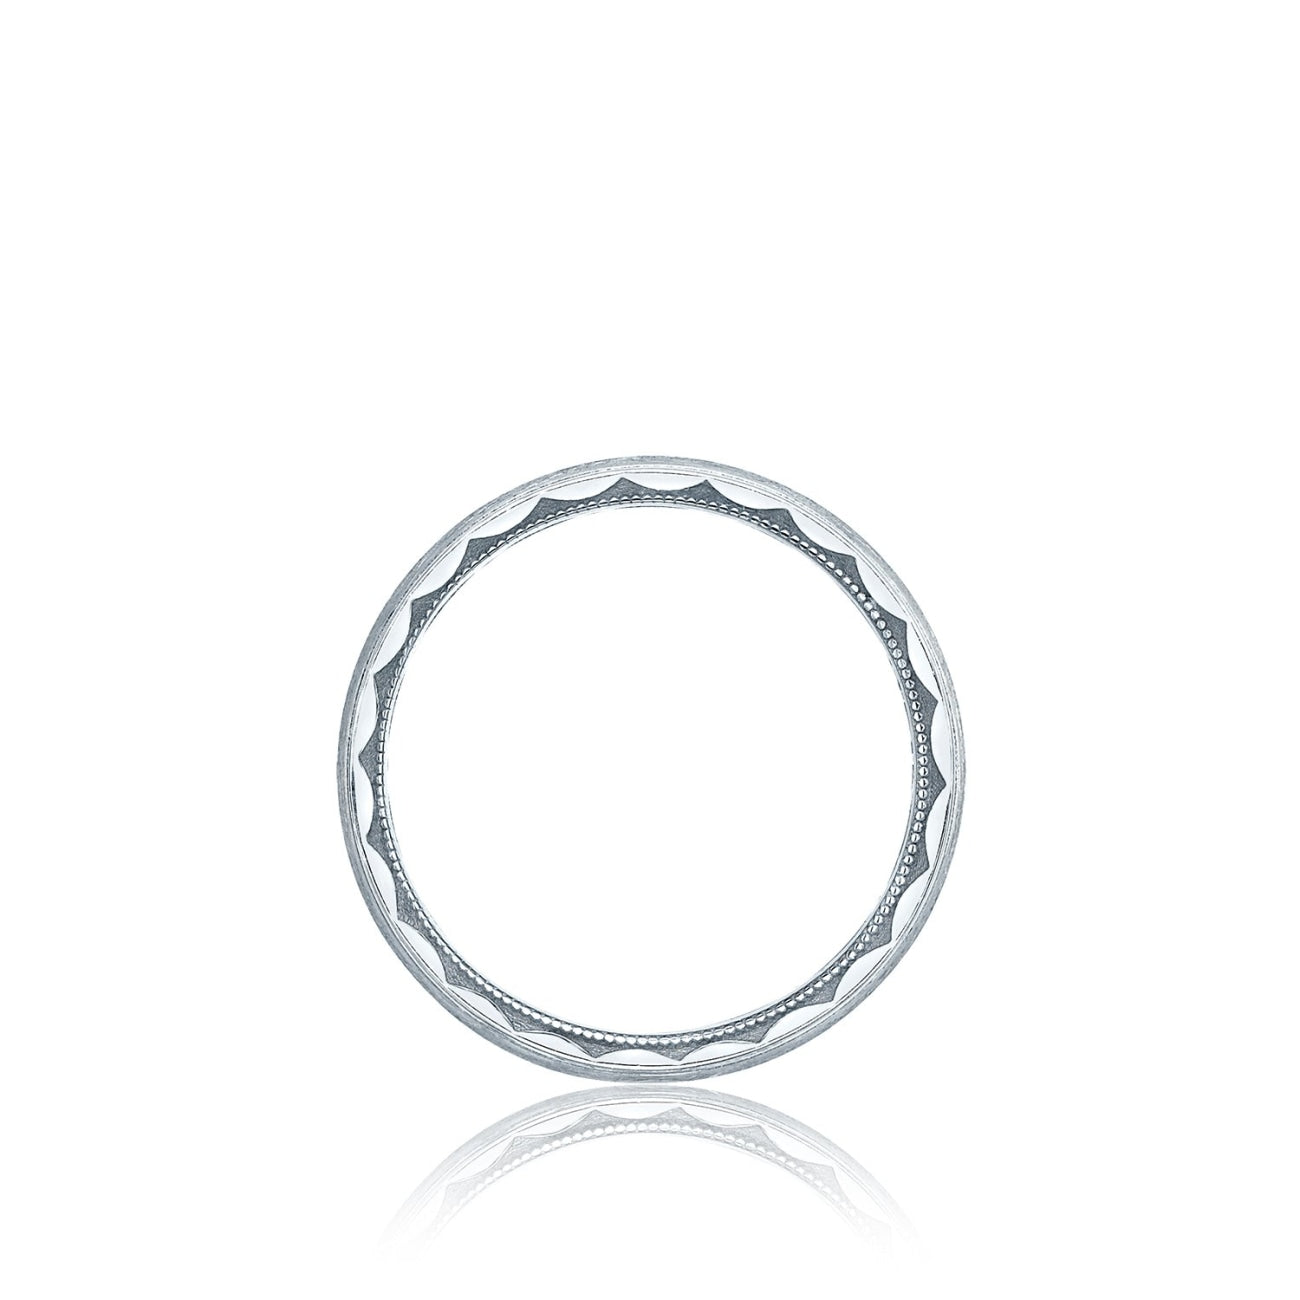 Tacori Jewelry - Millgrain edge mens band | Manfredi Jewels